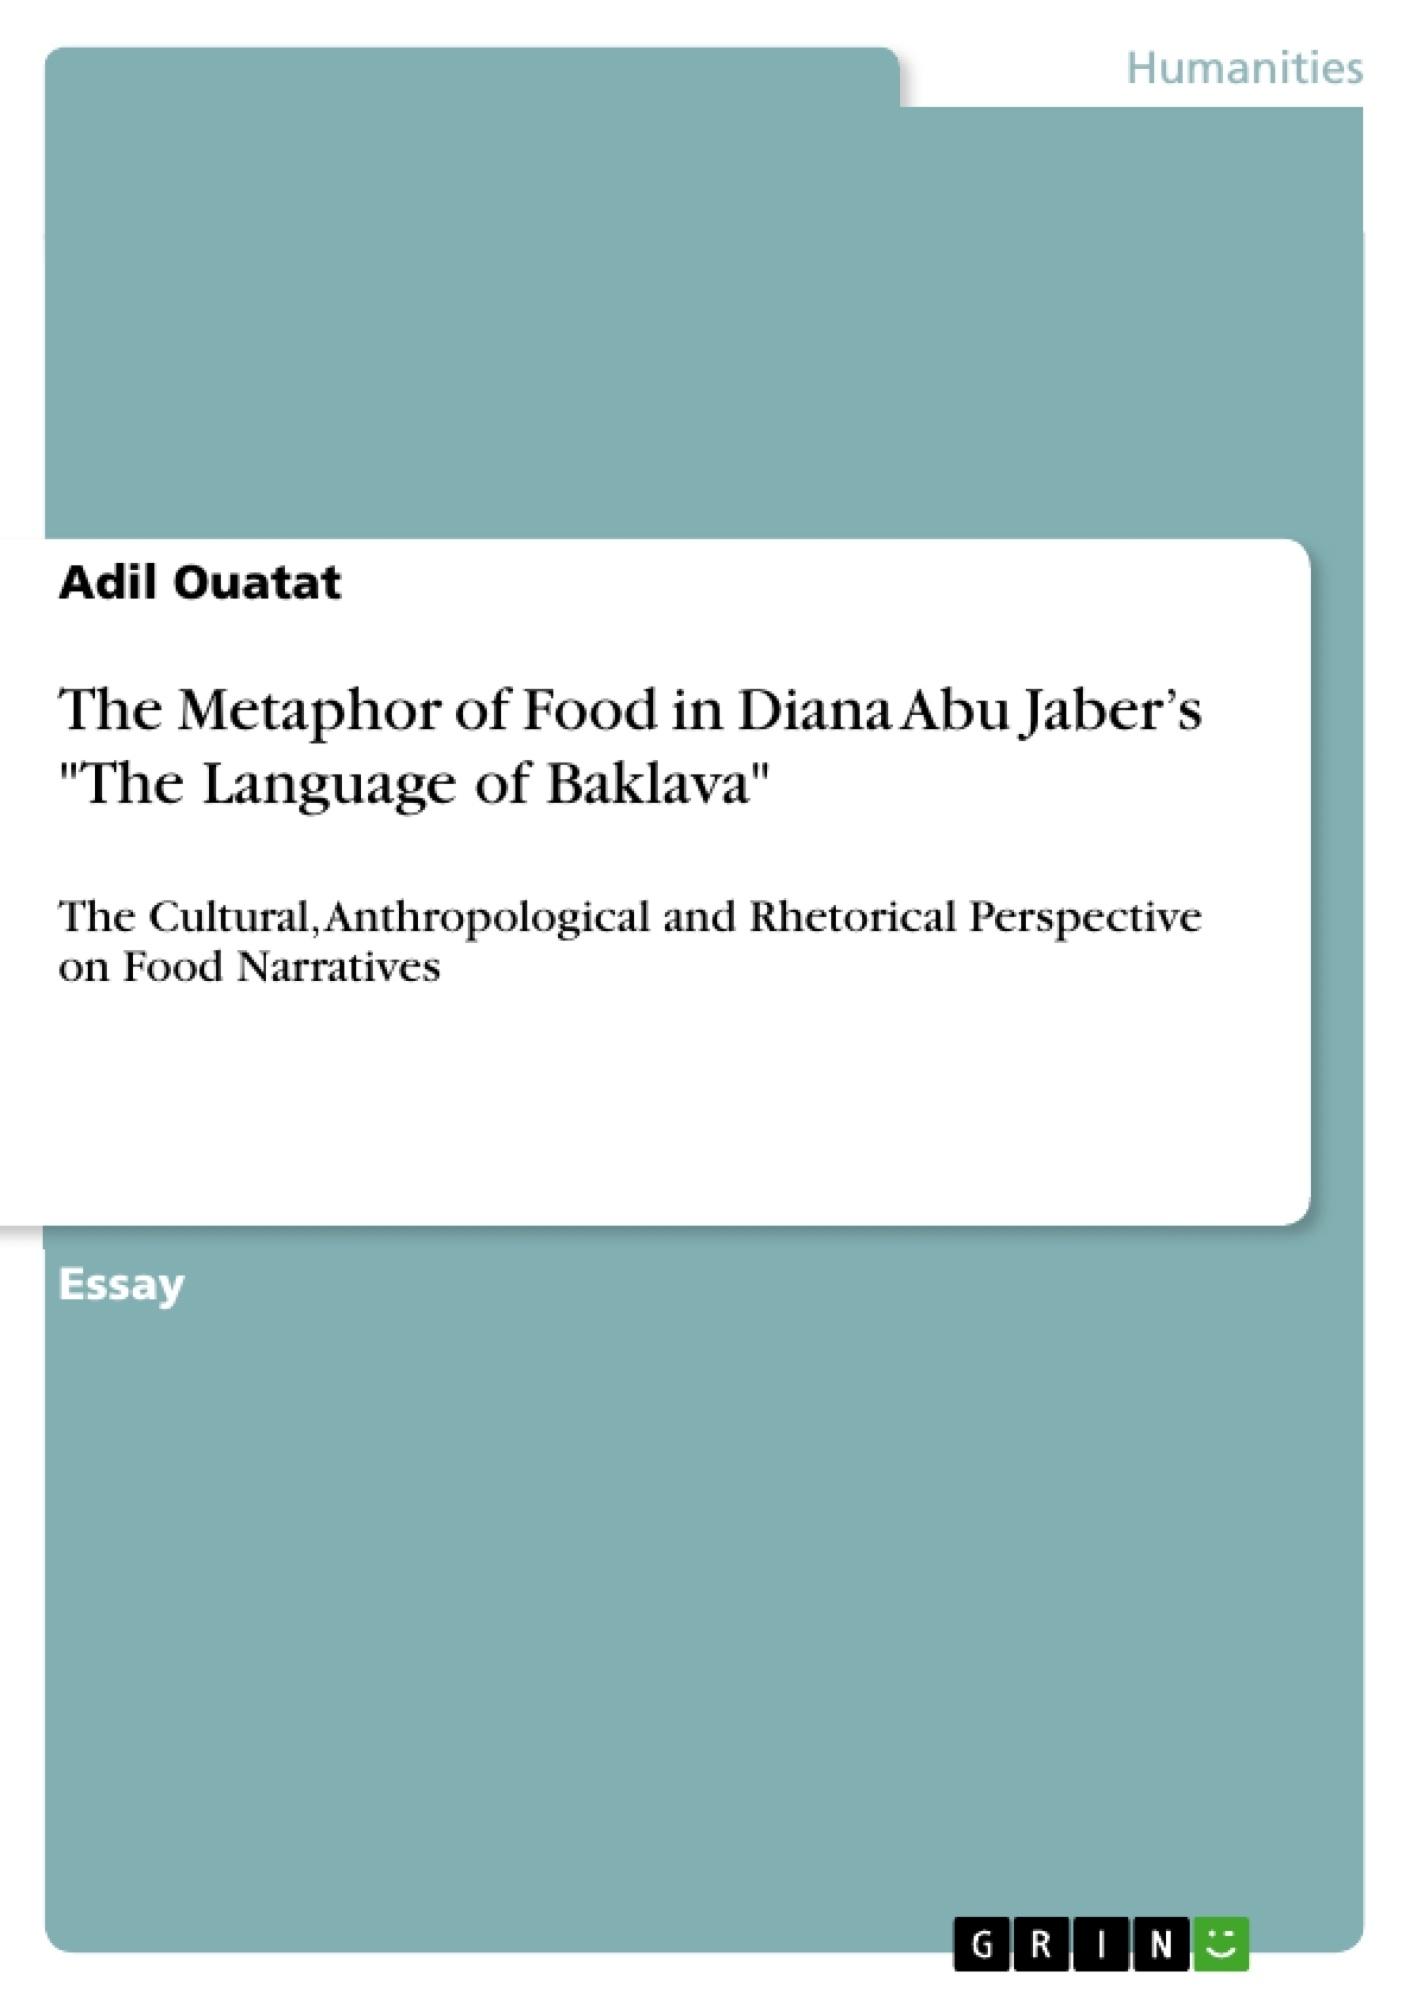 """Title: The Metaphor of Food in Diana Abu Jaber's """"The Language of Baklava"""""""